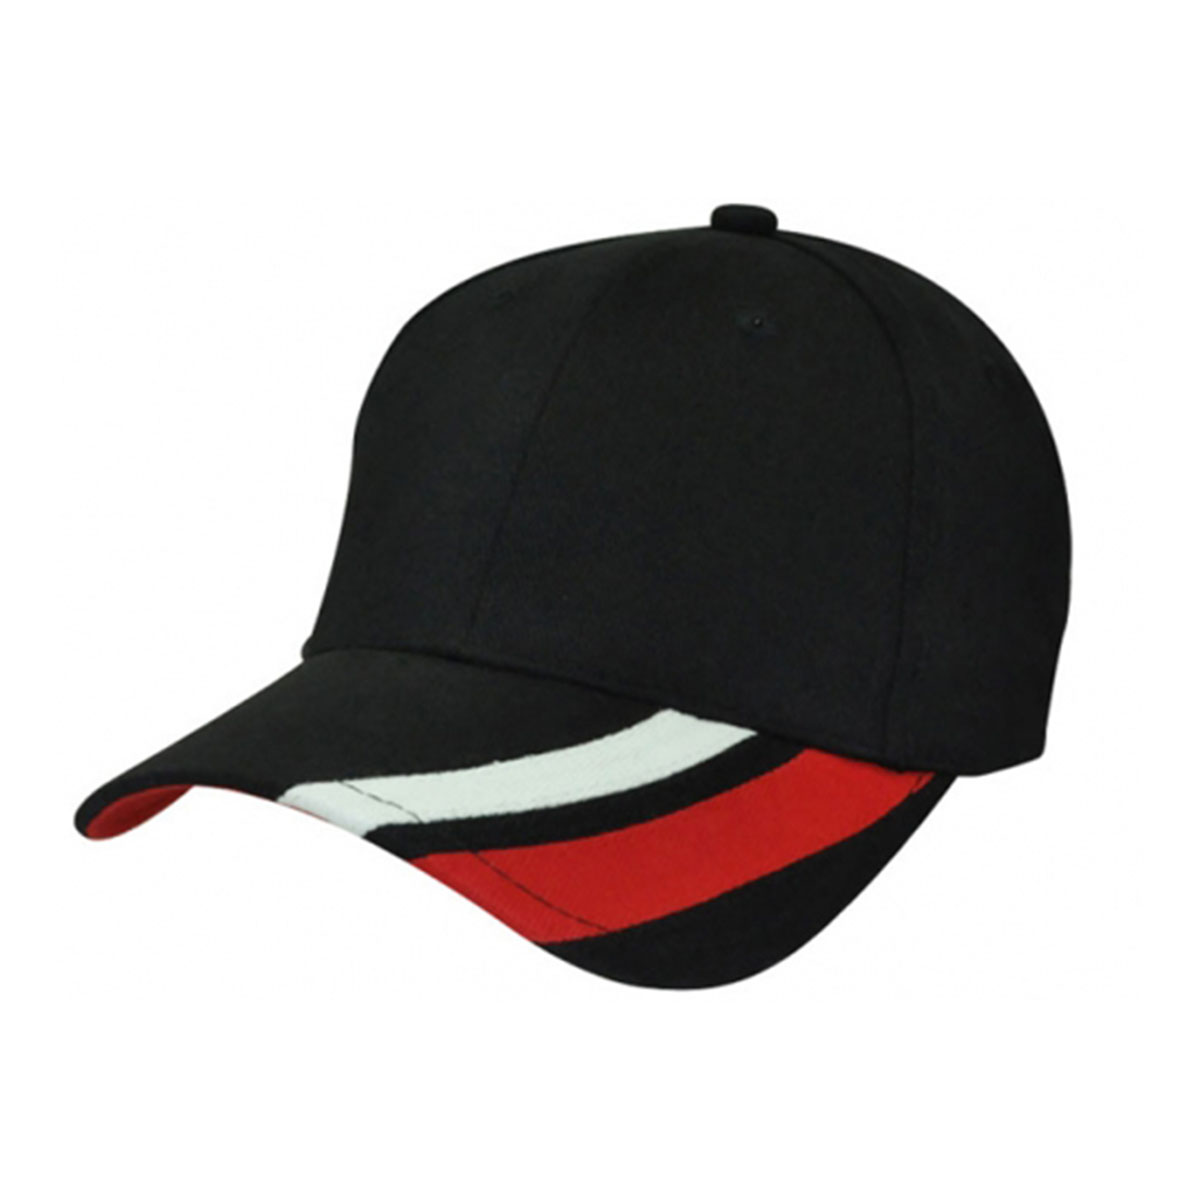 Metric Cap-Black / White / Red